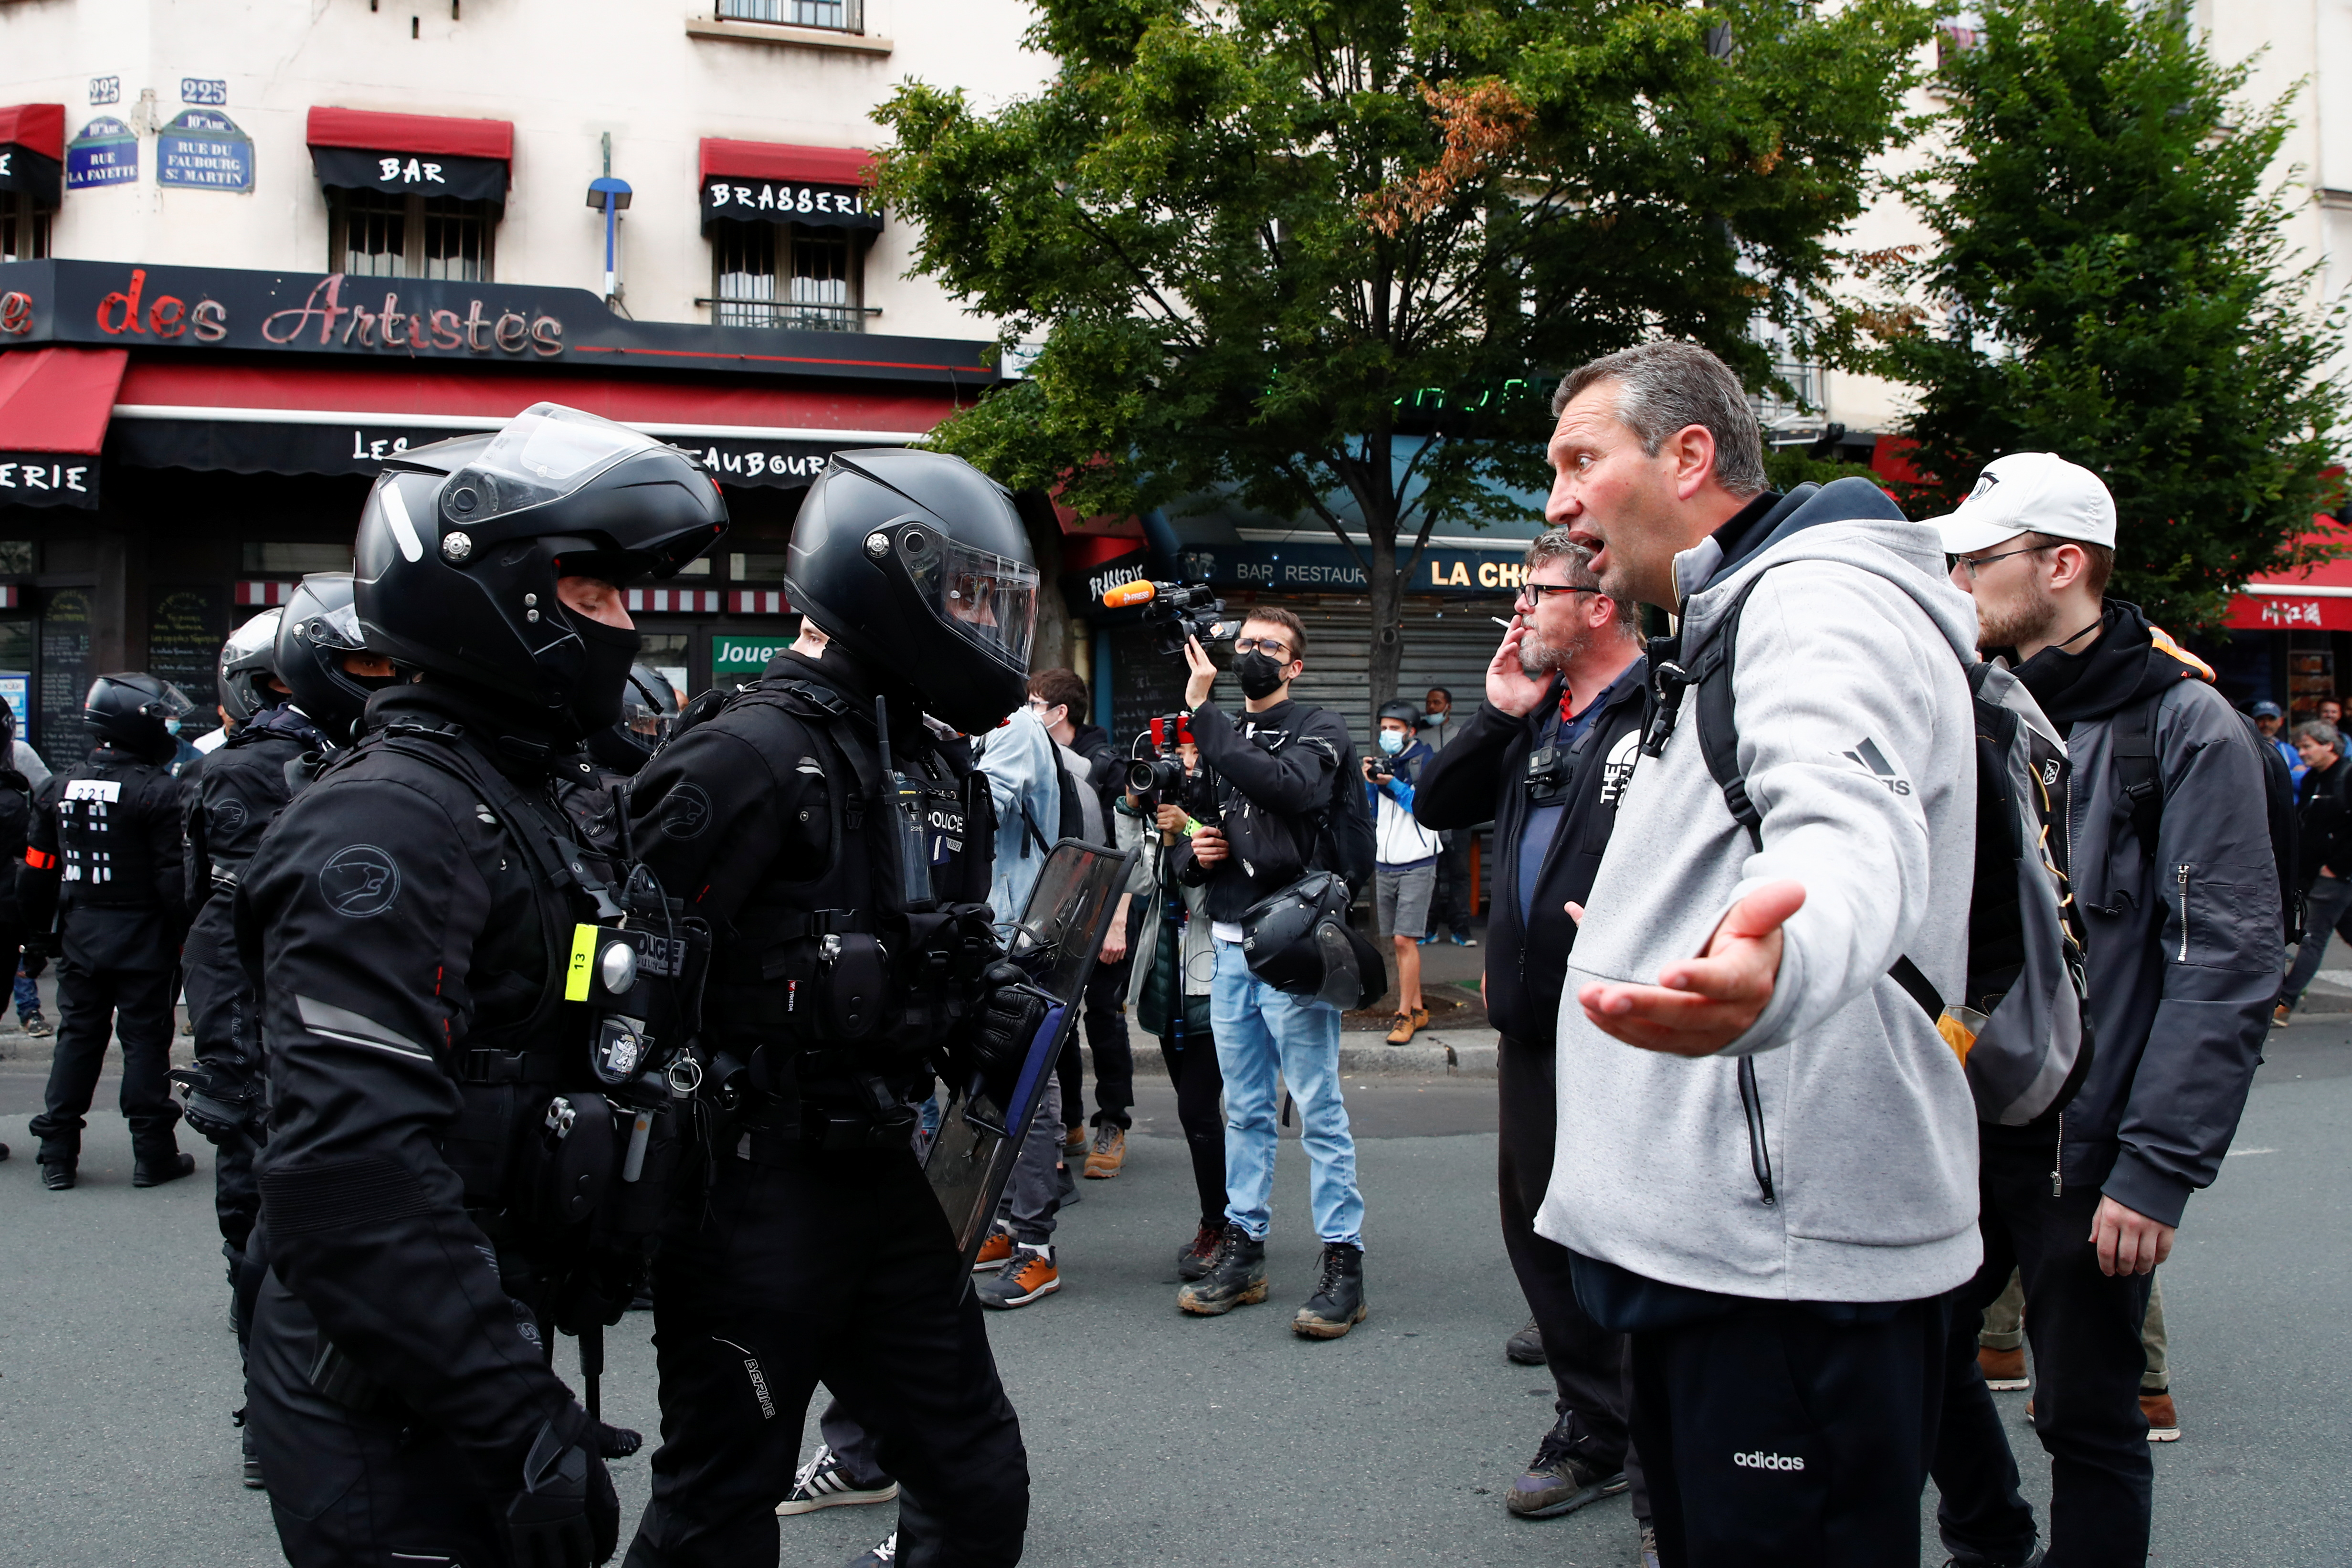 A demonstrator argues with police officers during a protest against the new measures announced by French President Emmanuel Macron to fight the coronavirus disease (COVID-19) outbreak, in Paris, France, July 14, 2021. REUTERS/Gonzalo Fuentes